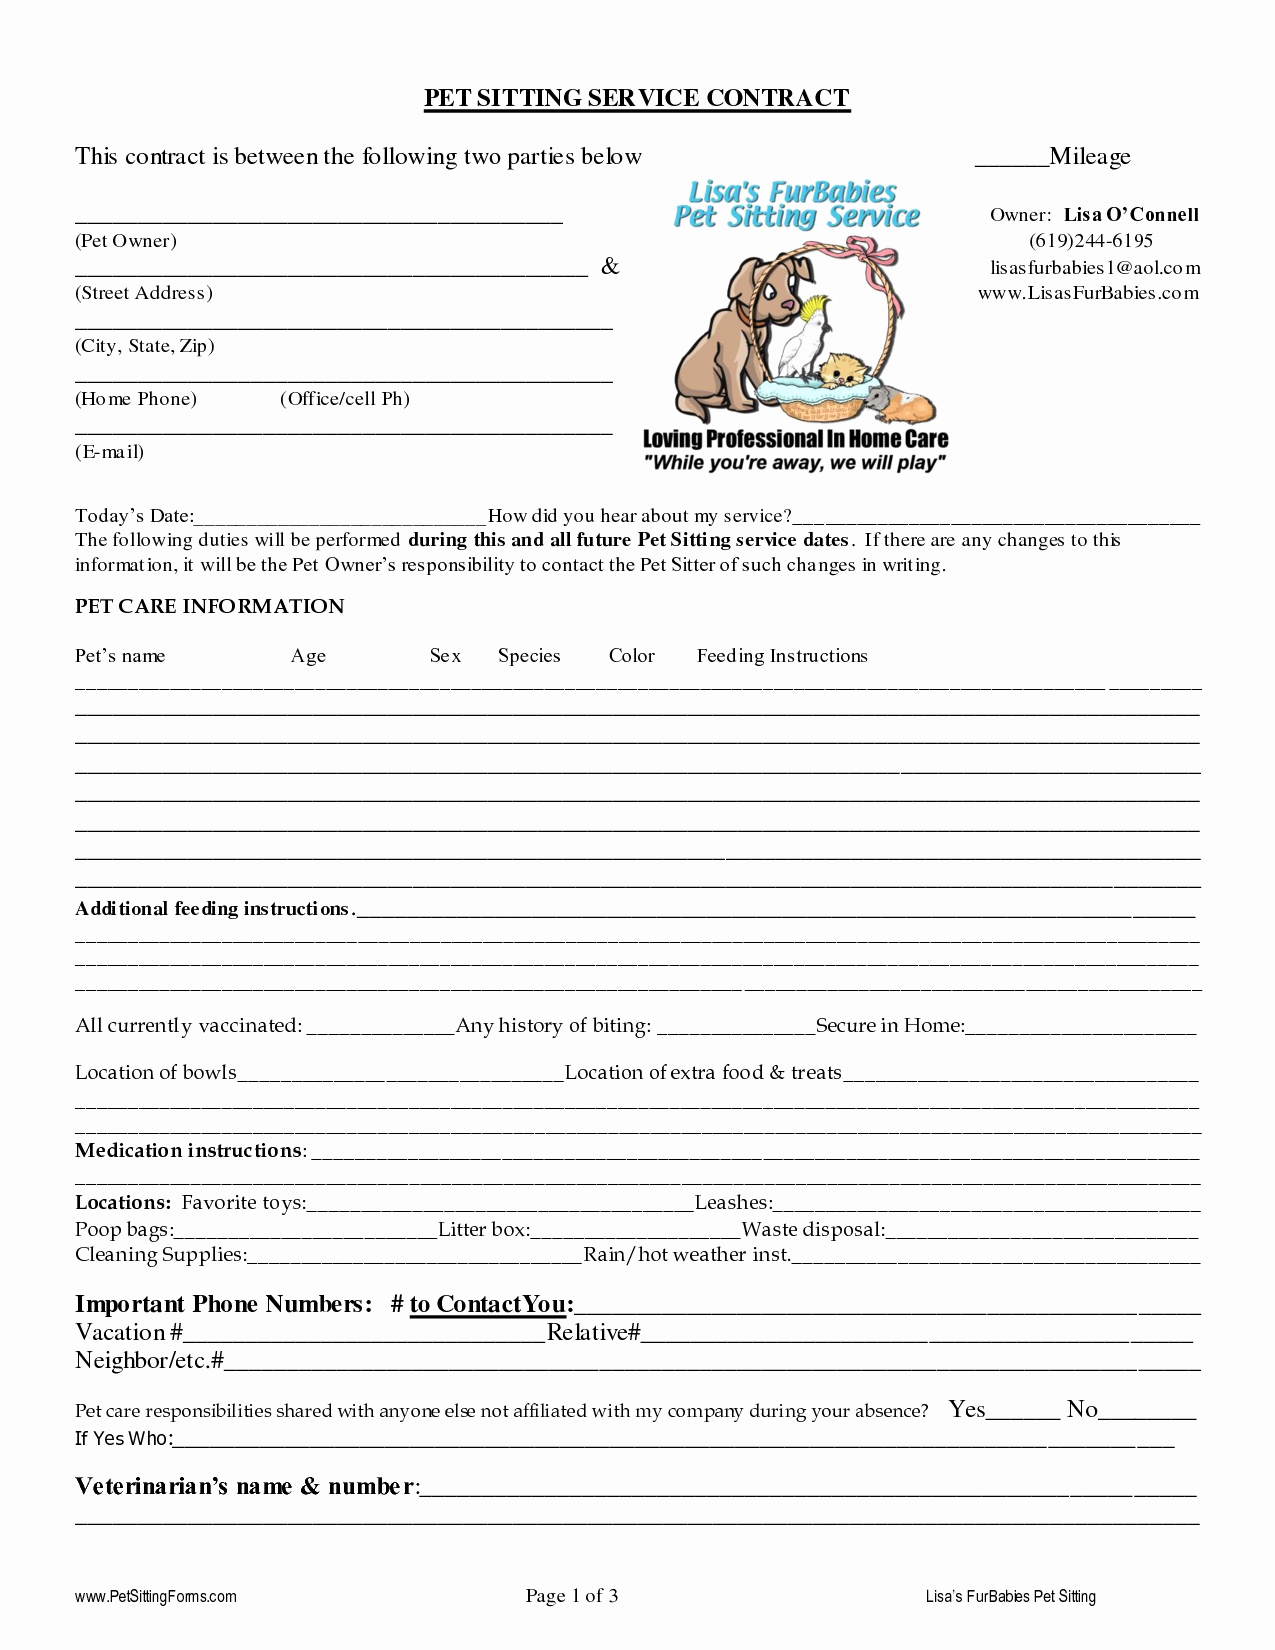 Pet Report Card Template Luxury Pet Sitting Contract Templates Dogs Pinterest